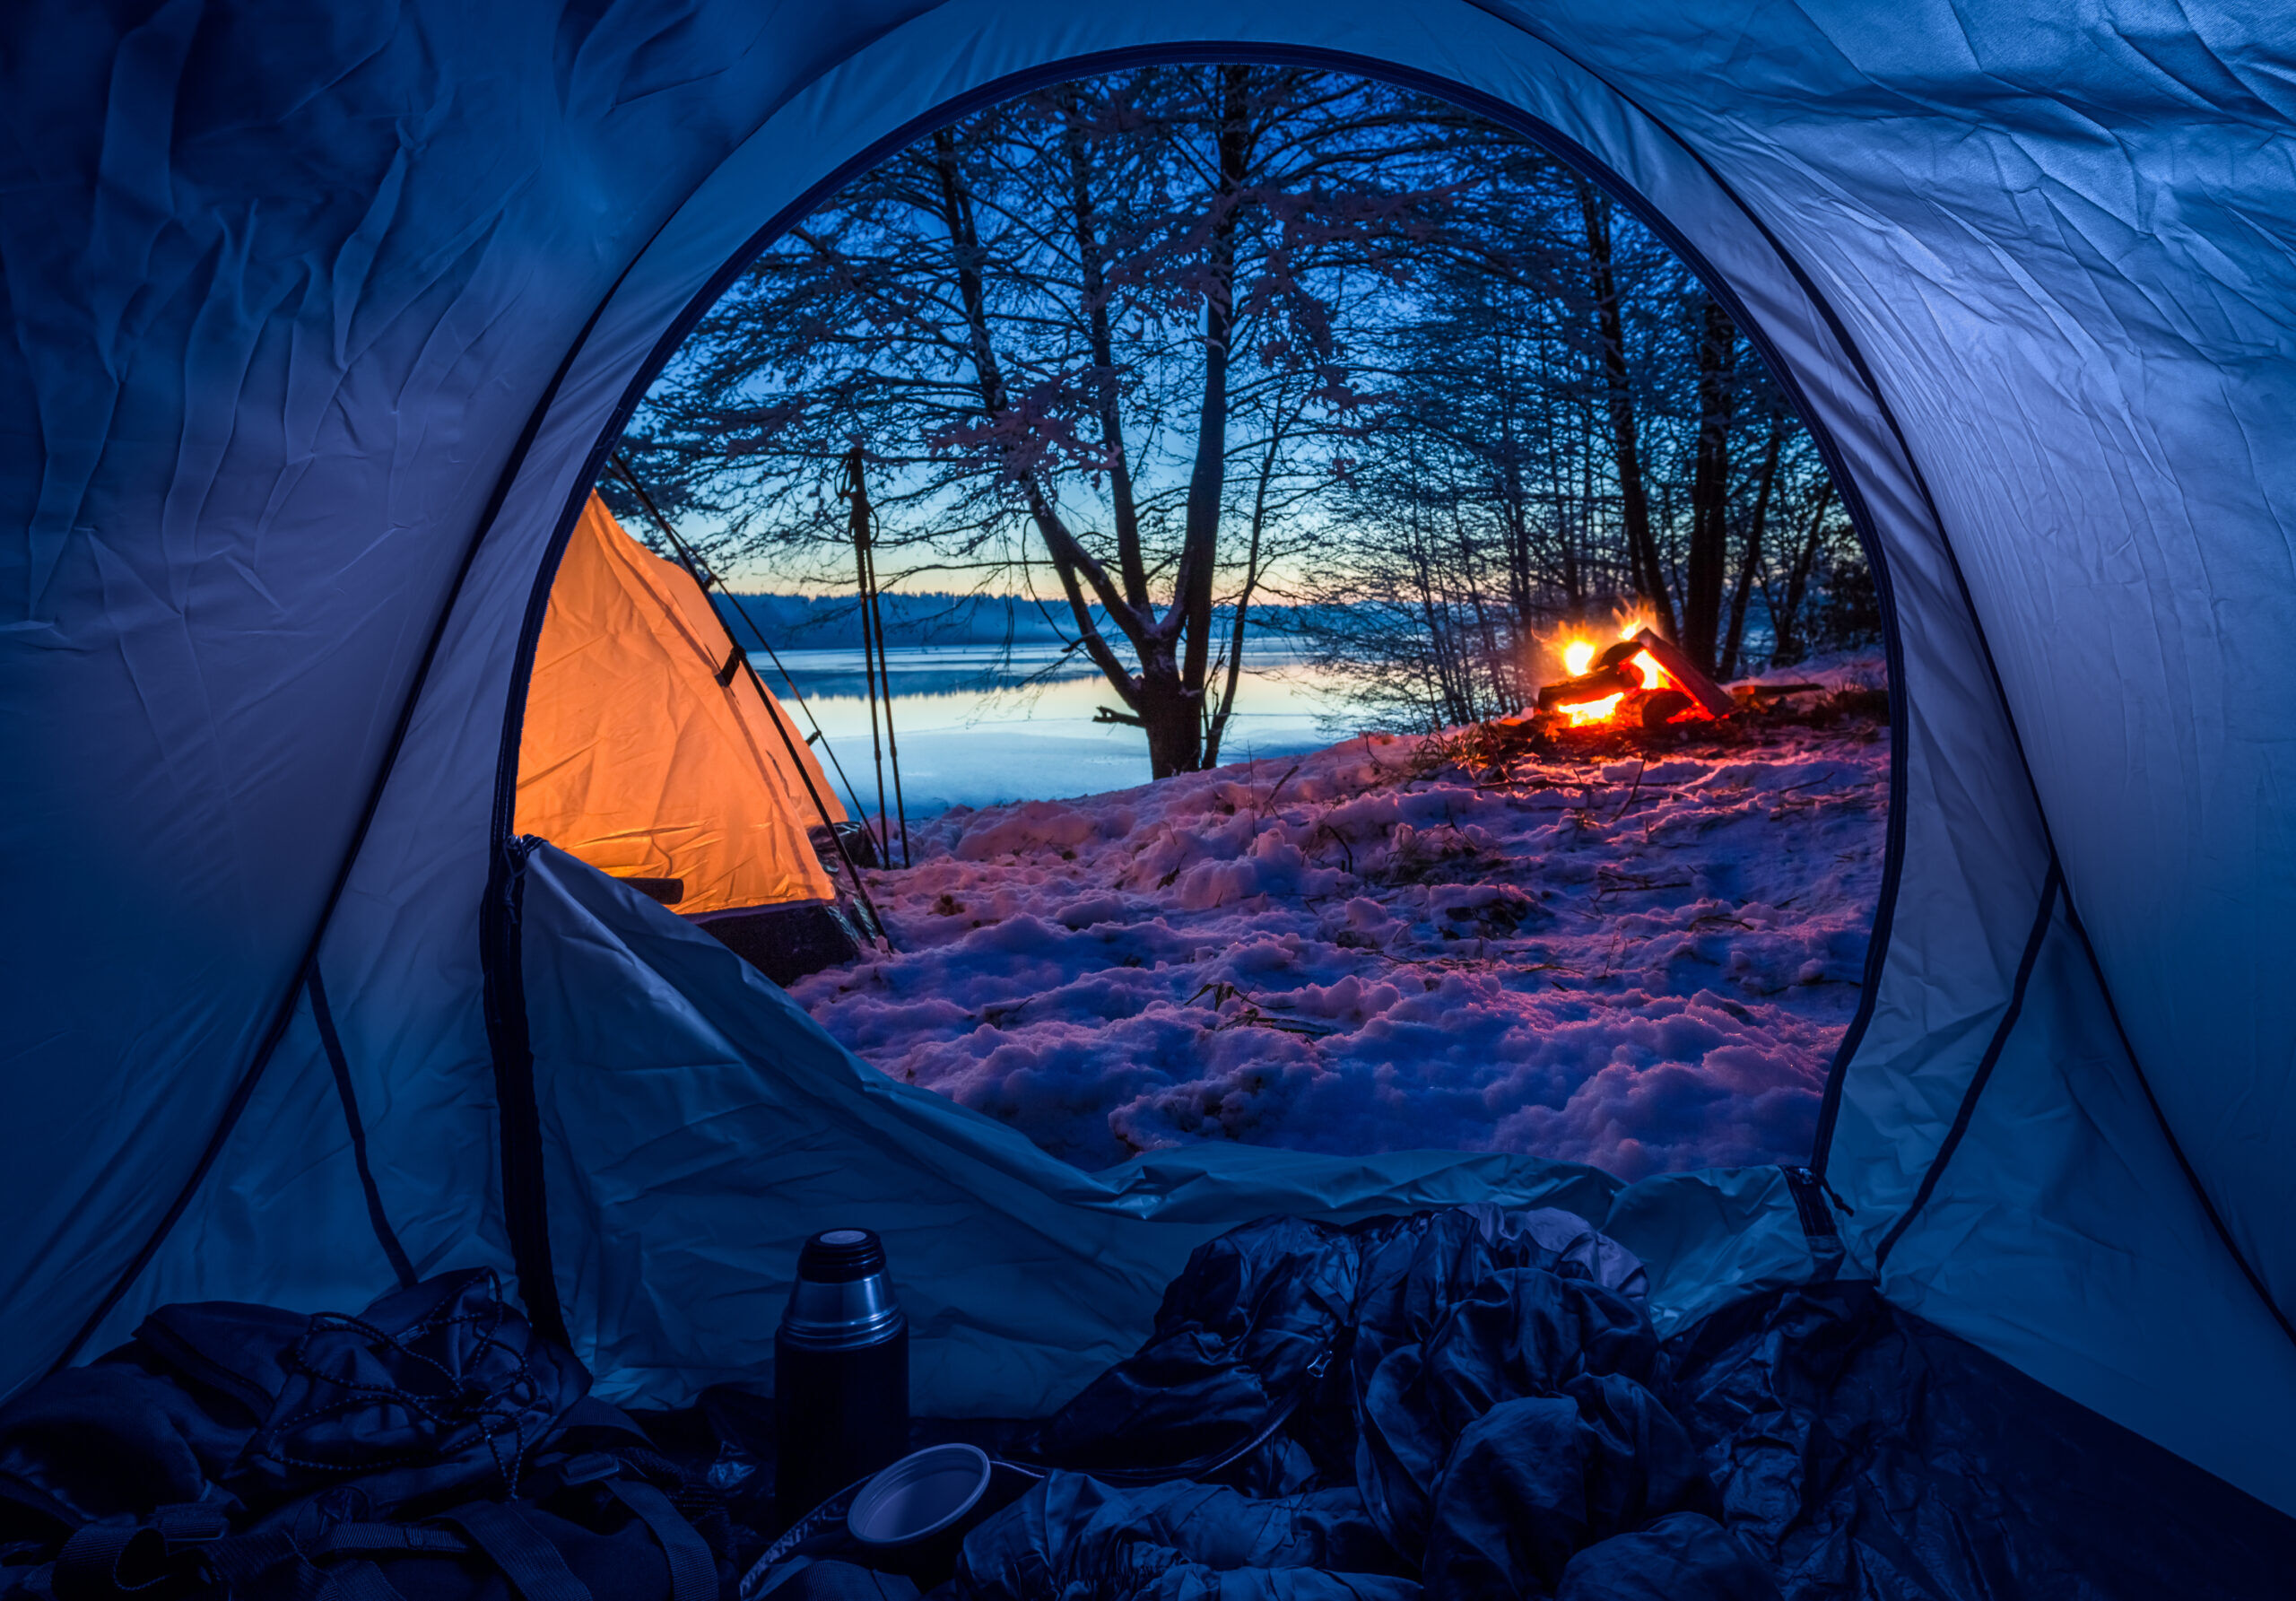 How to Keep Tent Warm, Tips for Winter Camping